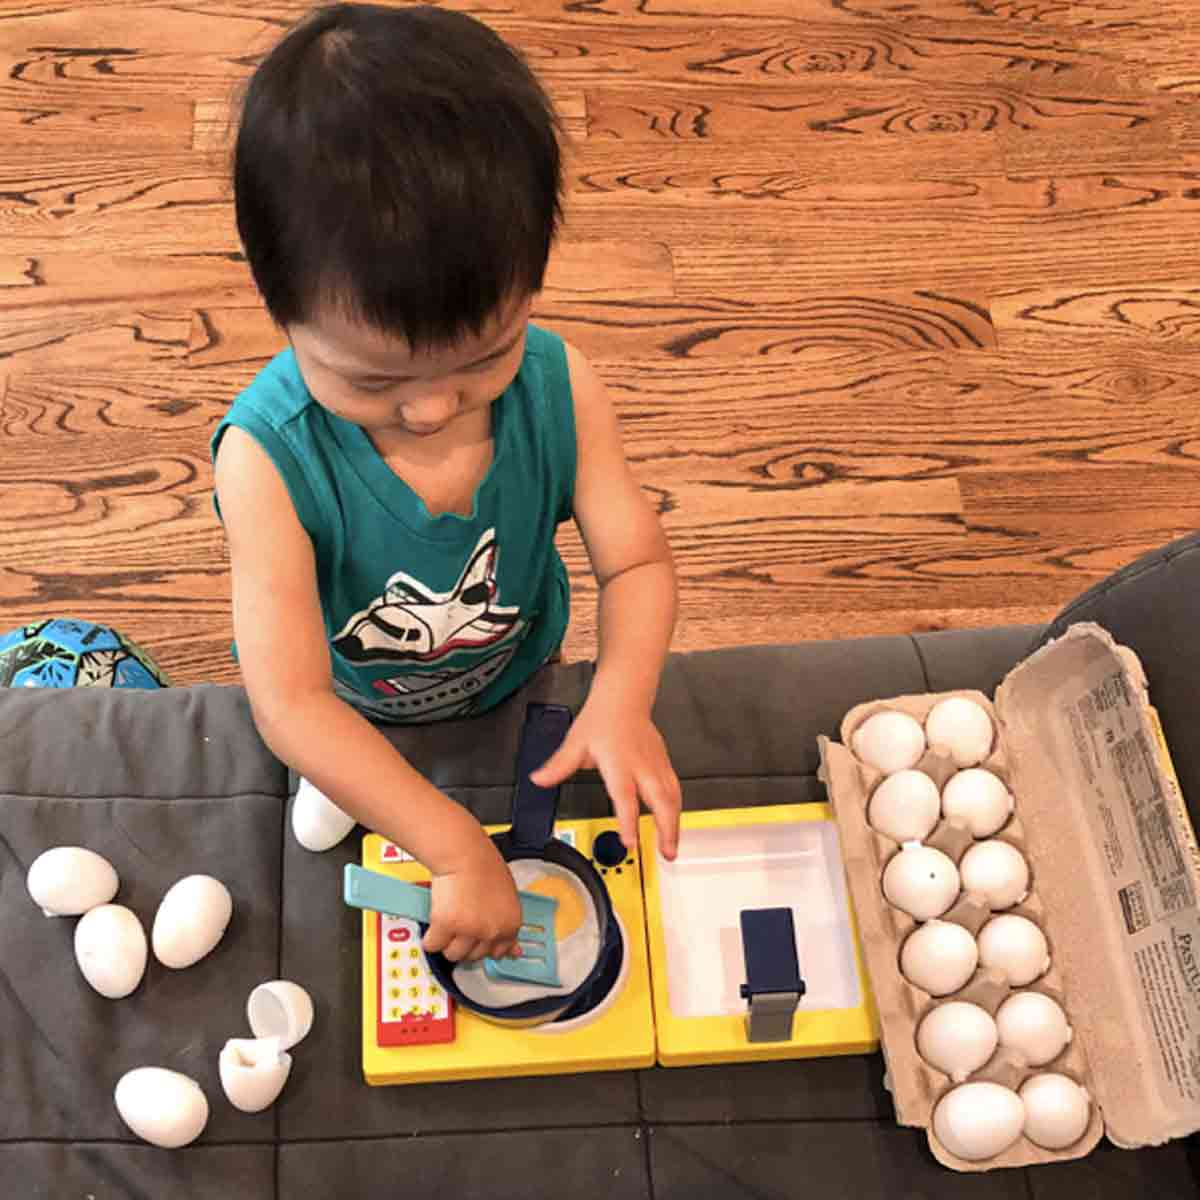 Toddler playing with pretend play felt egg on toy cooking pot